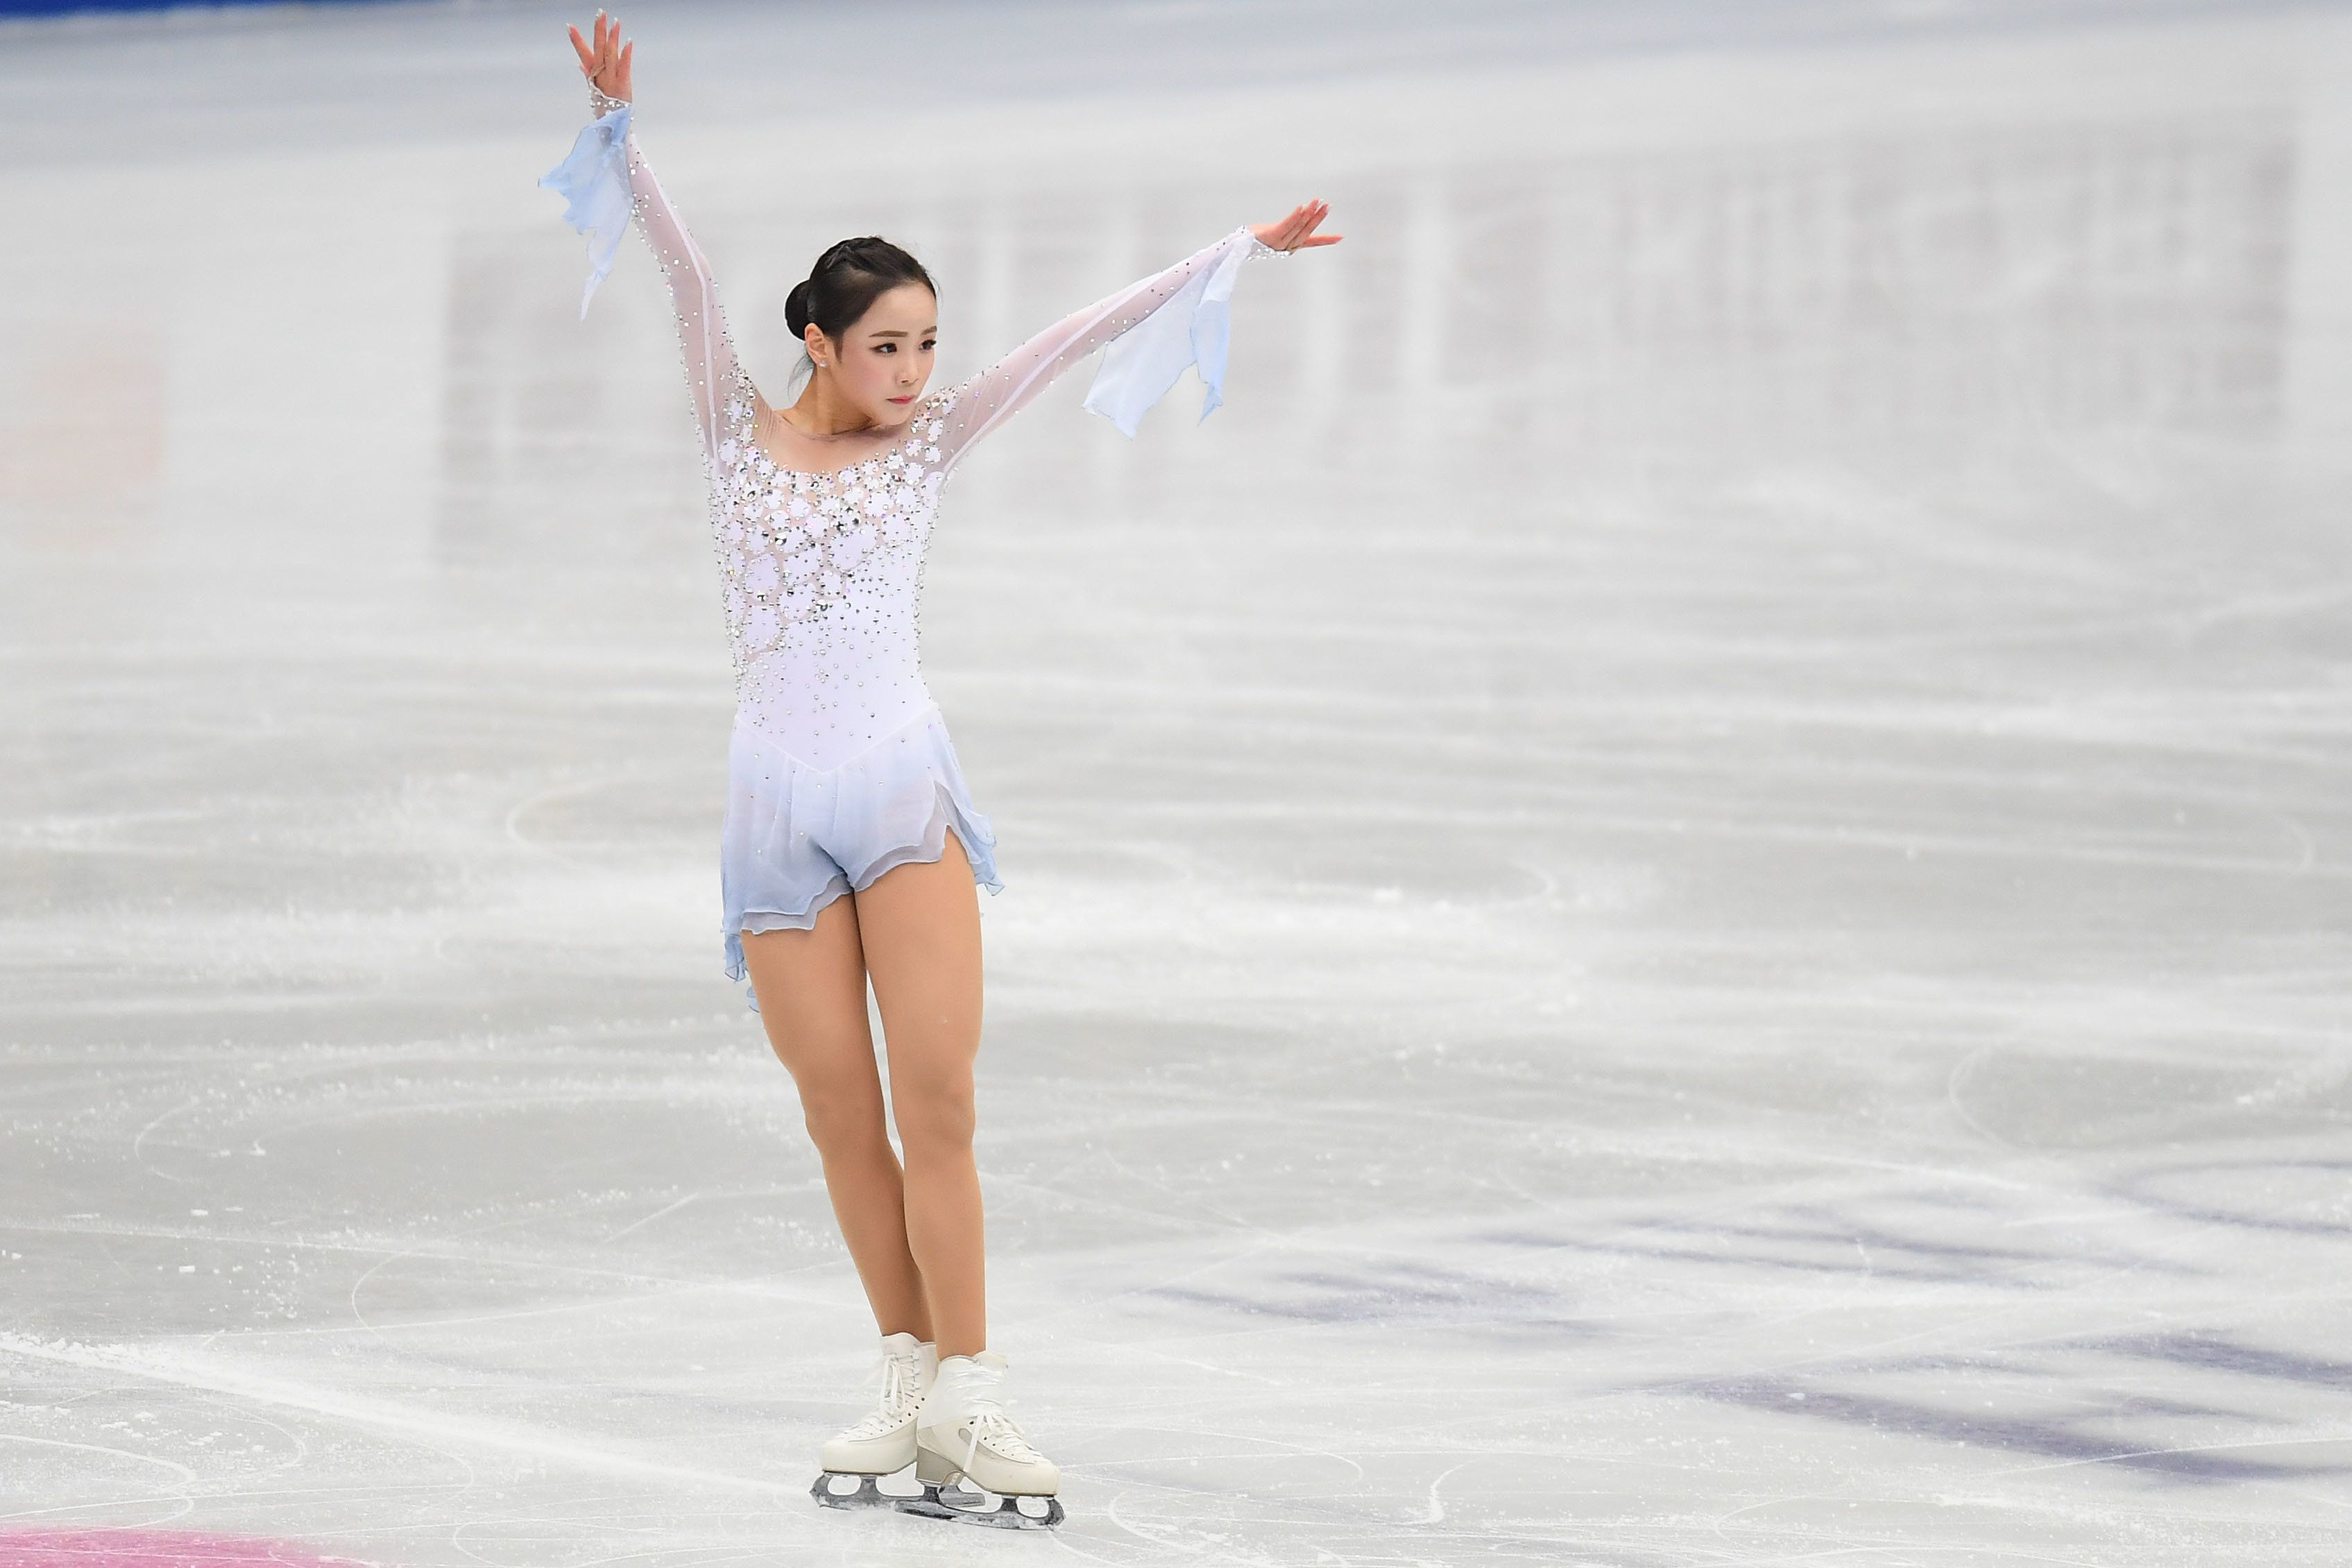 Lim went on to score a personal best in the short program, coming in fifth place, just ahead of Bell.